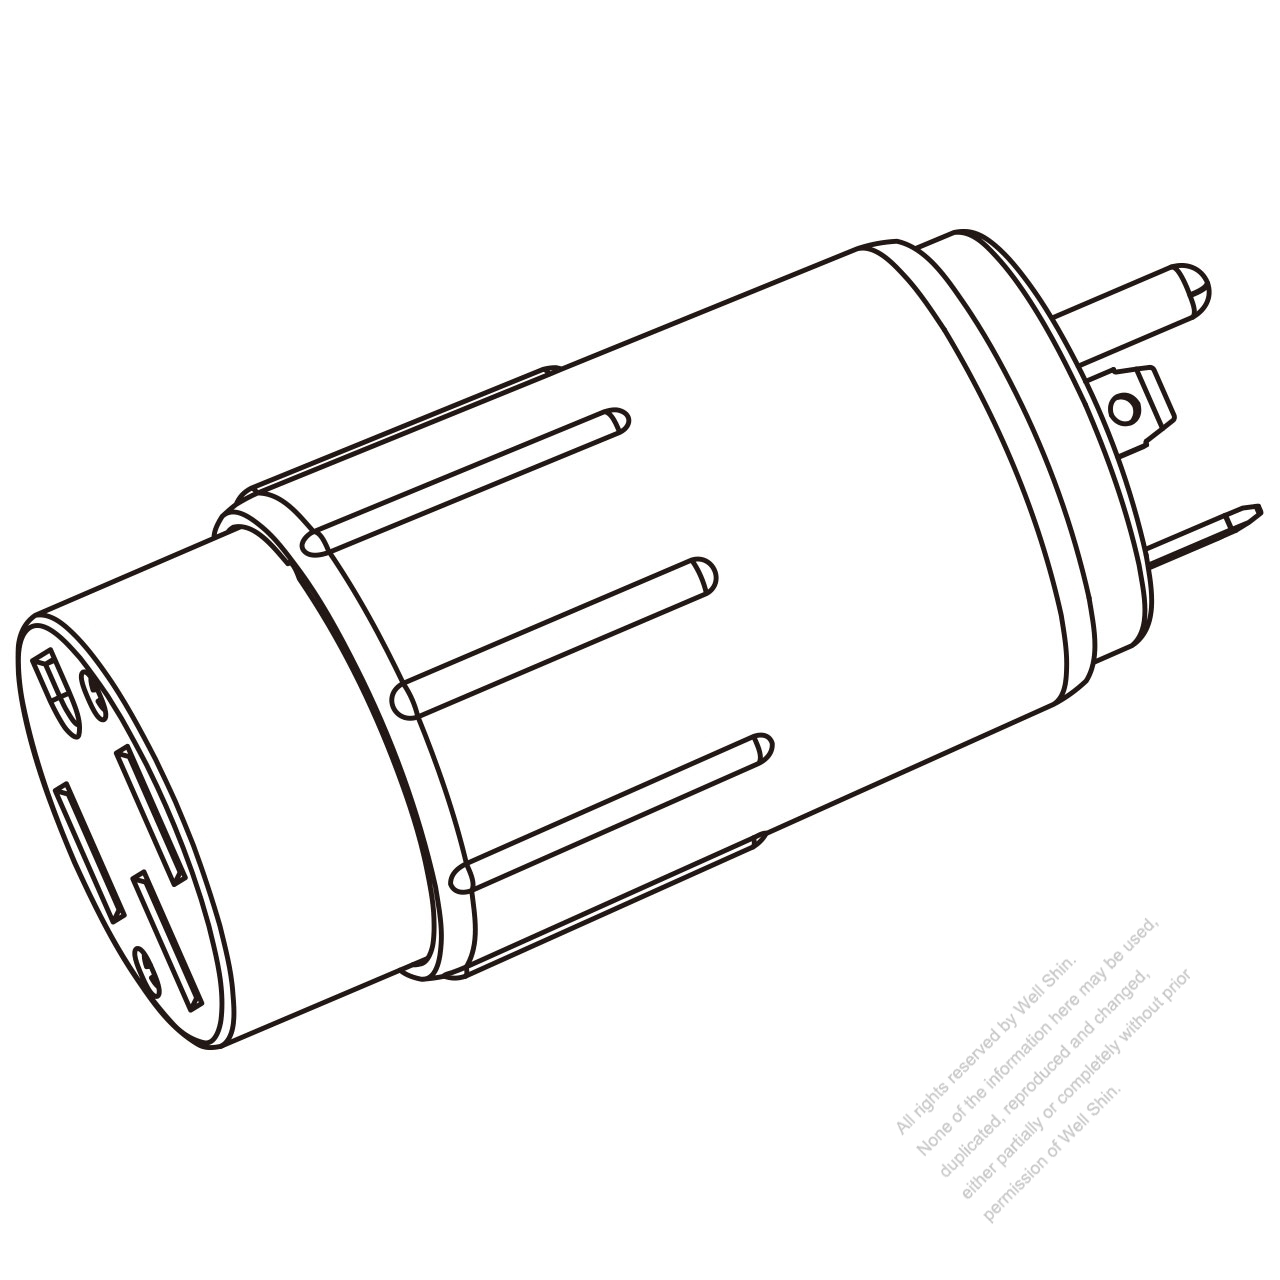 RV Adapter Plug, NEMA TT-30P to 14-50R, 3 to 4-Pin 30A